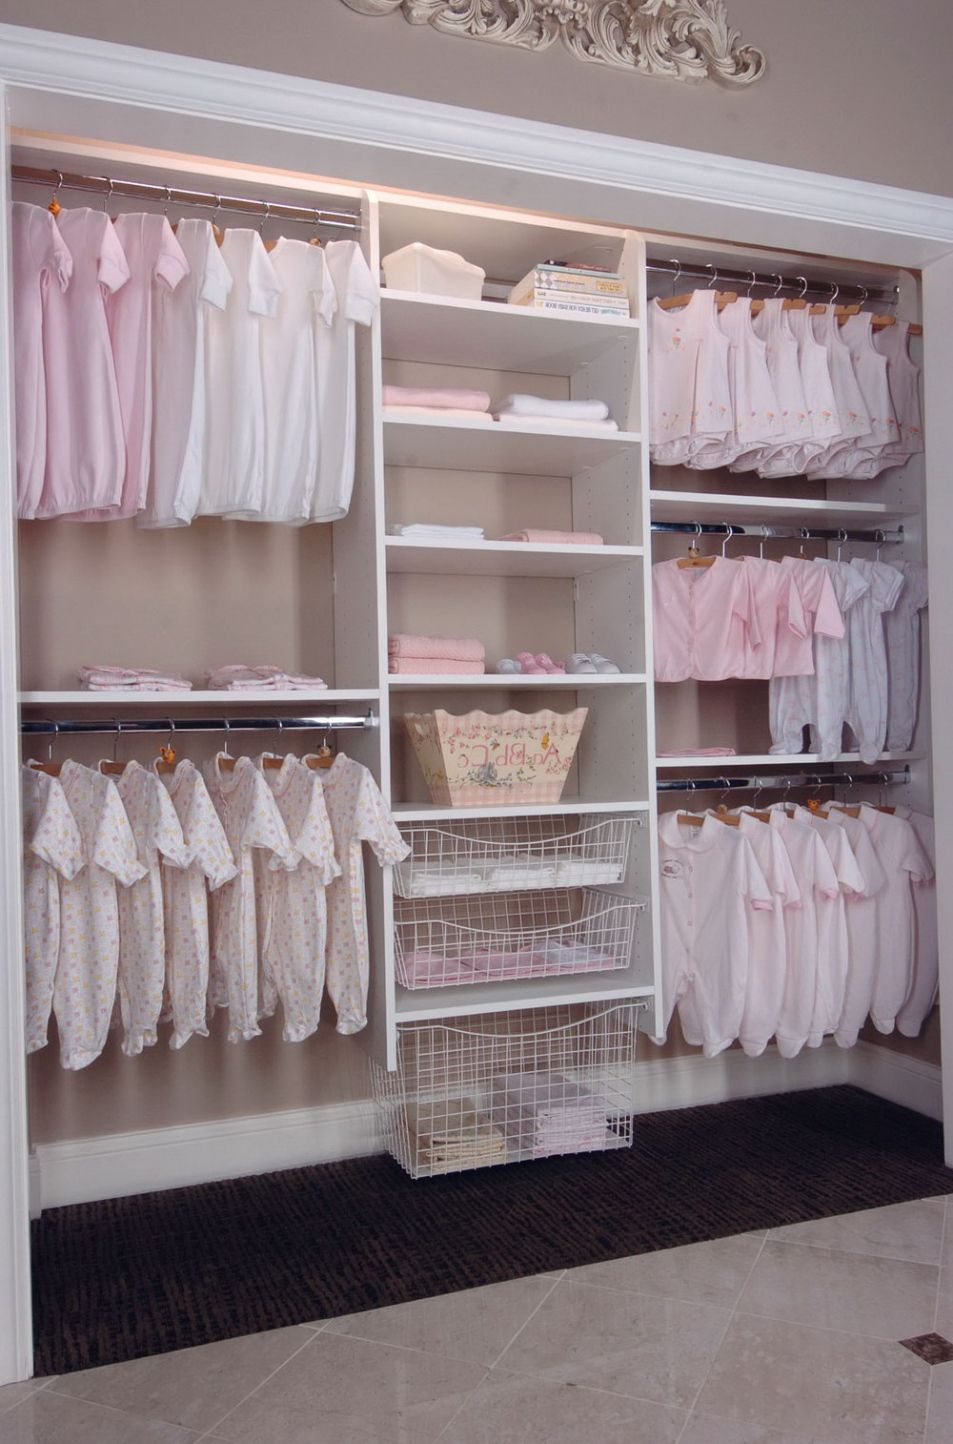 Baby Clothes Storage Furniture Lowes Paint Colors Interior Check More At Http Www Chulaniphotography C Closet Shoe Storage Storage Furniture Closet Storage